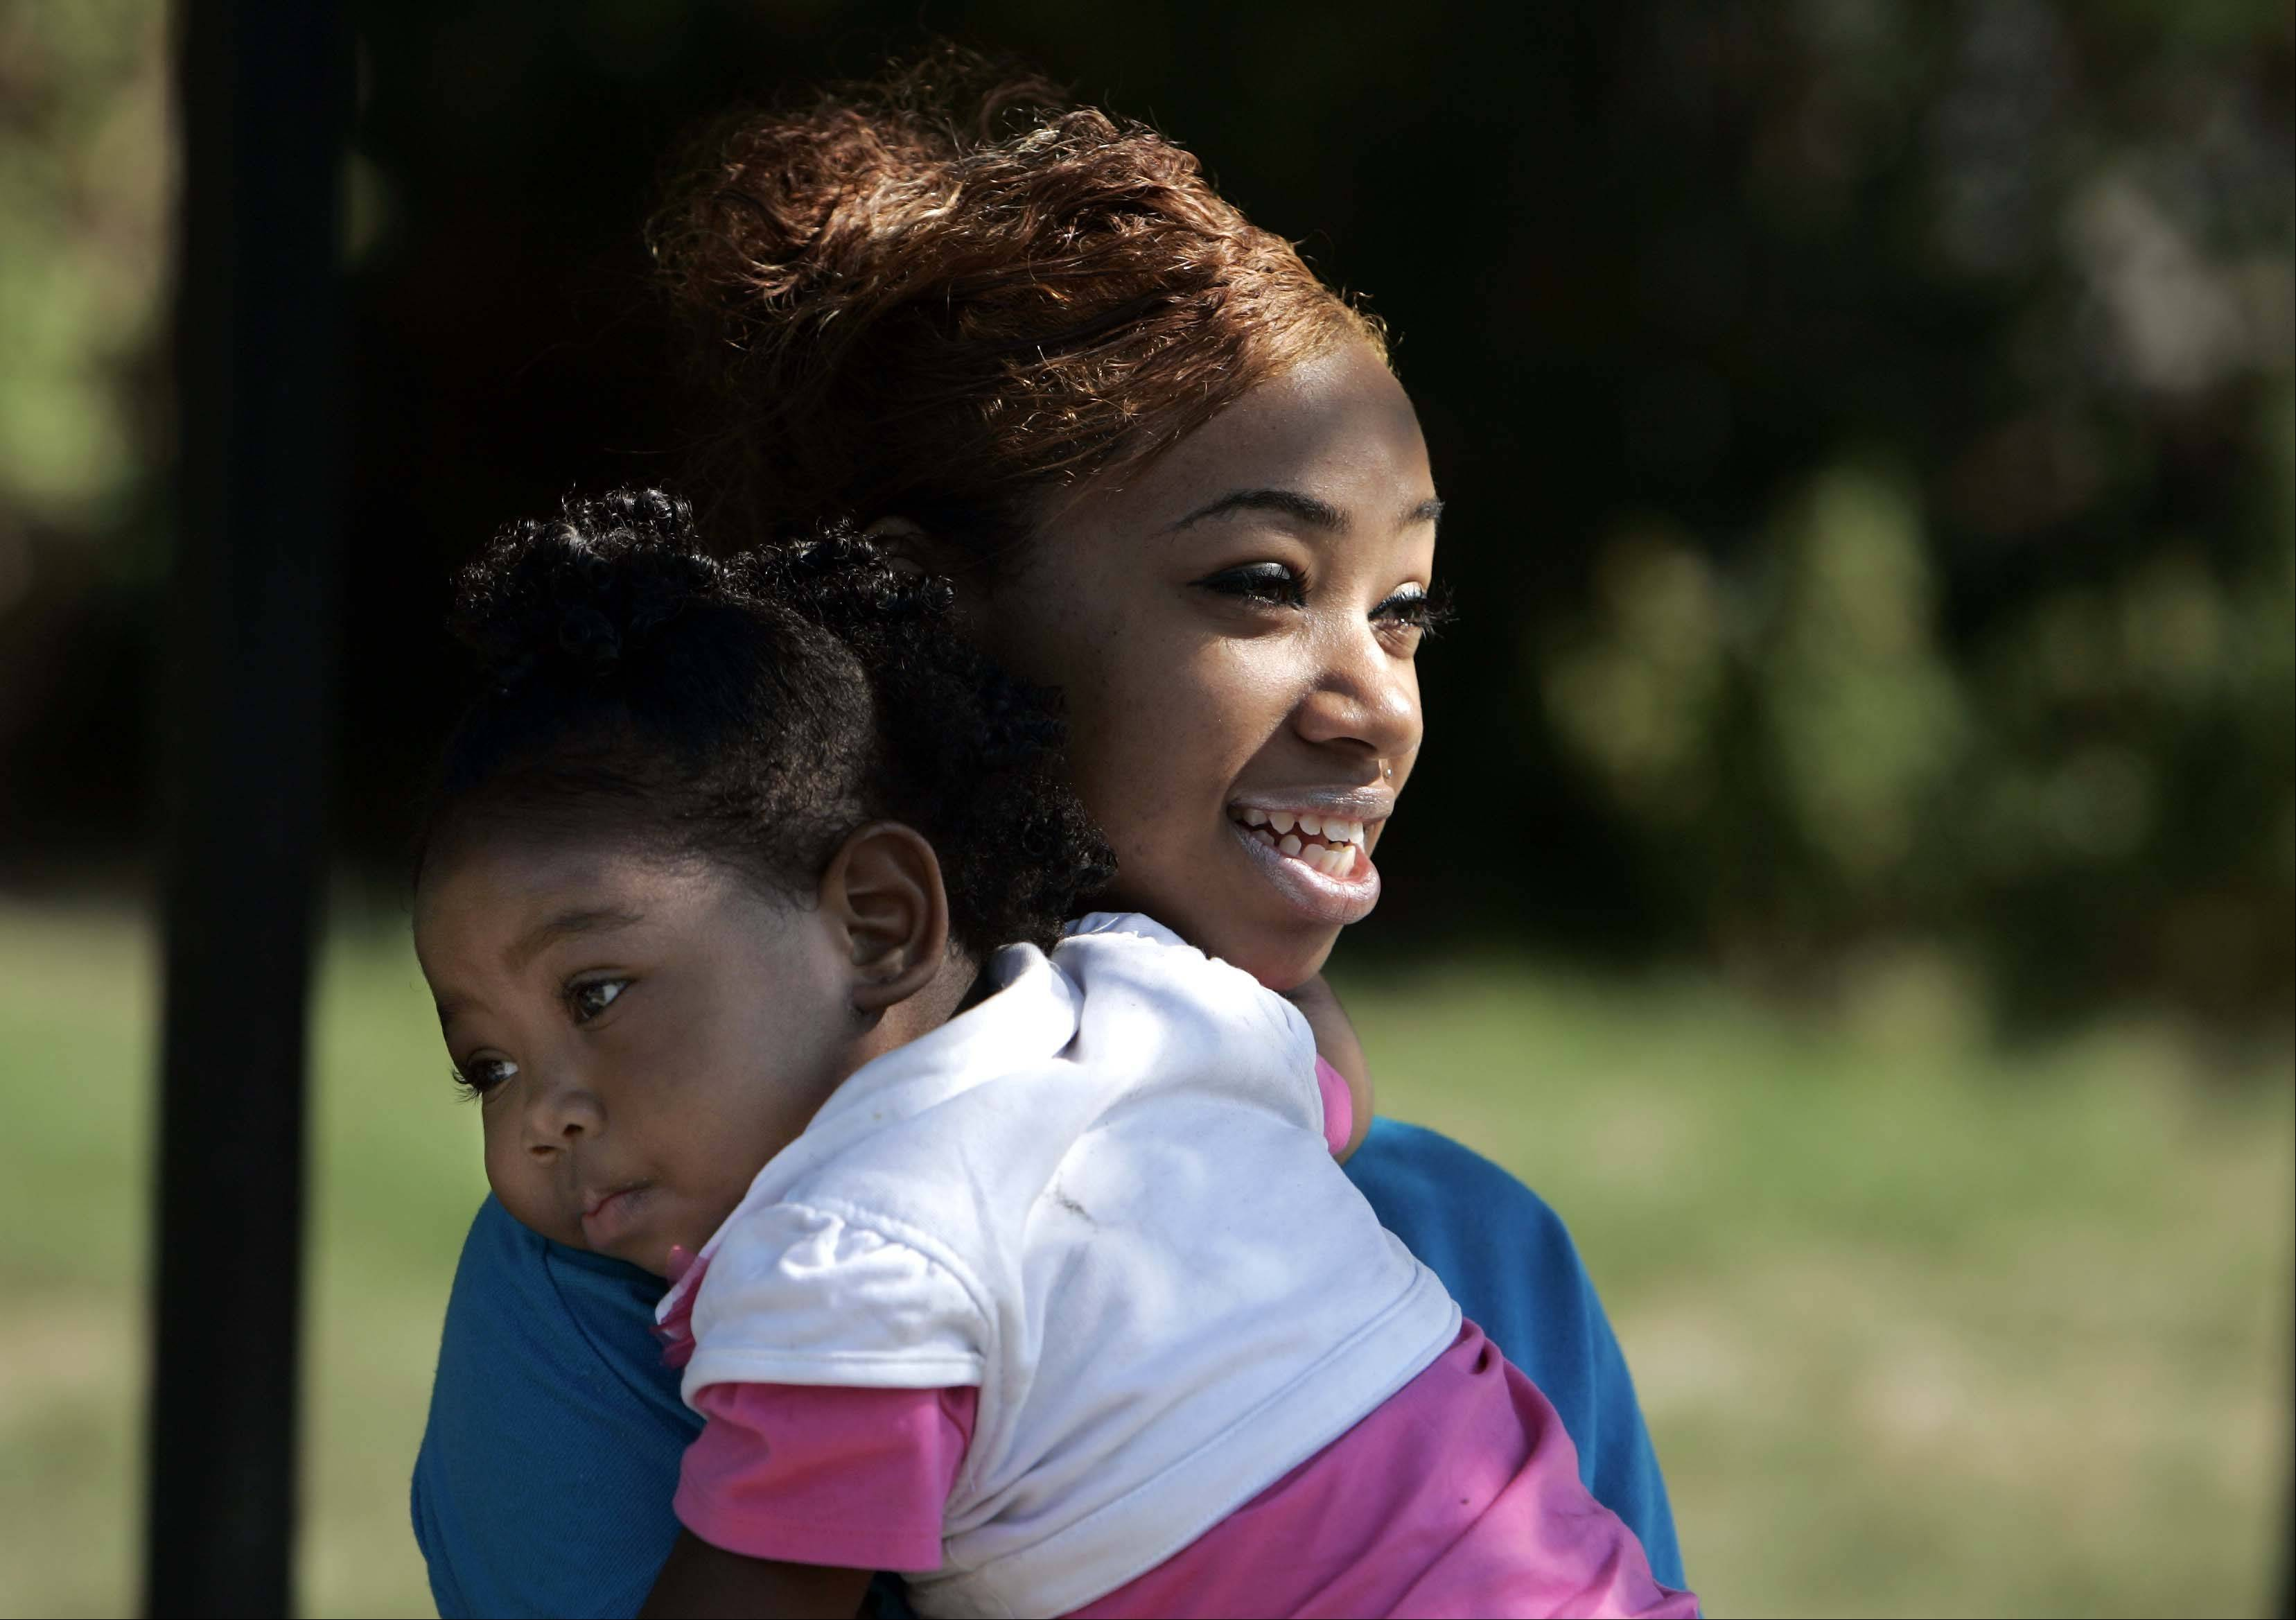 Nineteen-year-old Chrystal Stokes of Elgin with daughter Nevaeh Johnson at their Elgin home. Stokes found out she was pregnant as a sophomore at Elgin High School. She plans to attend Elgin Community College in January.